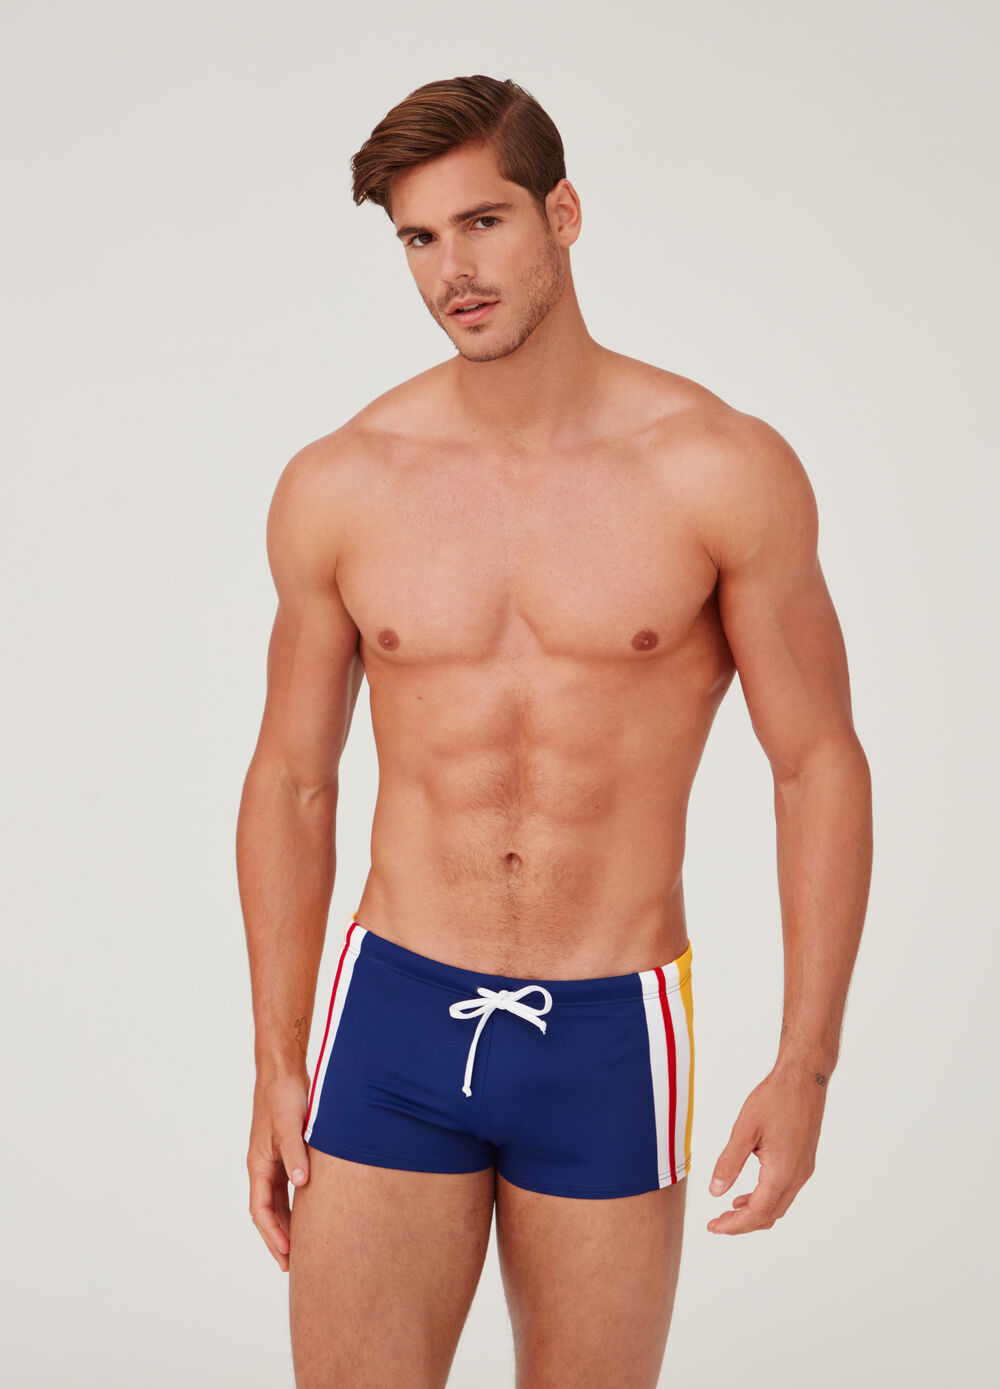 Swim boxer shorts with Ocean Care print and drawstring